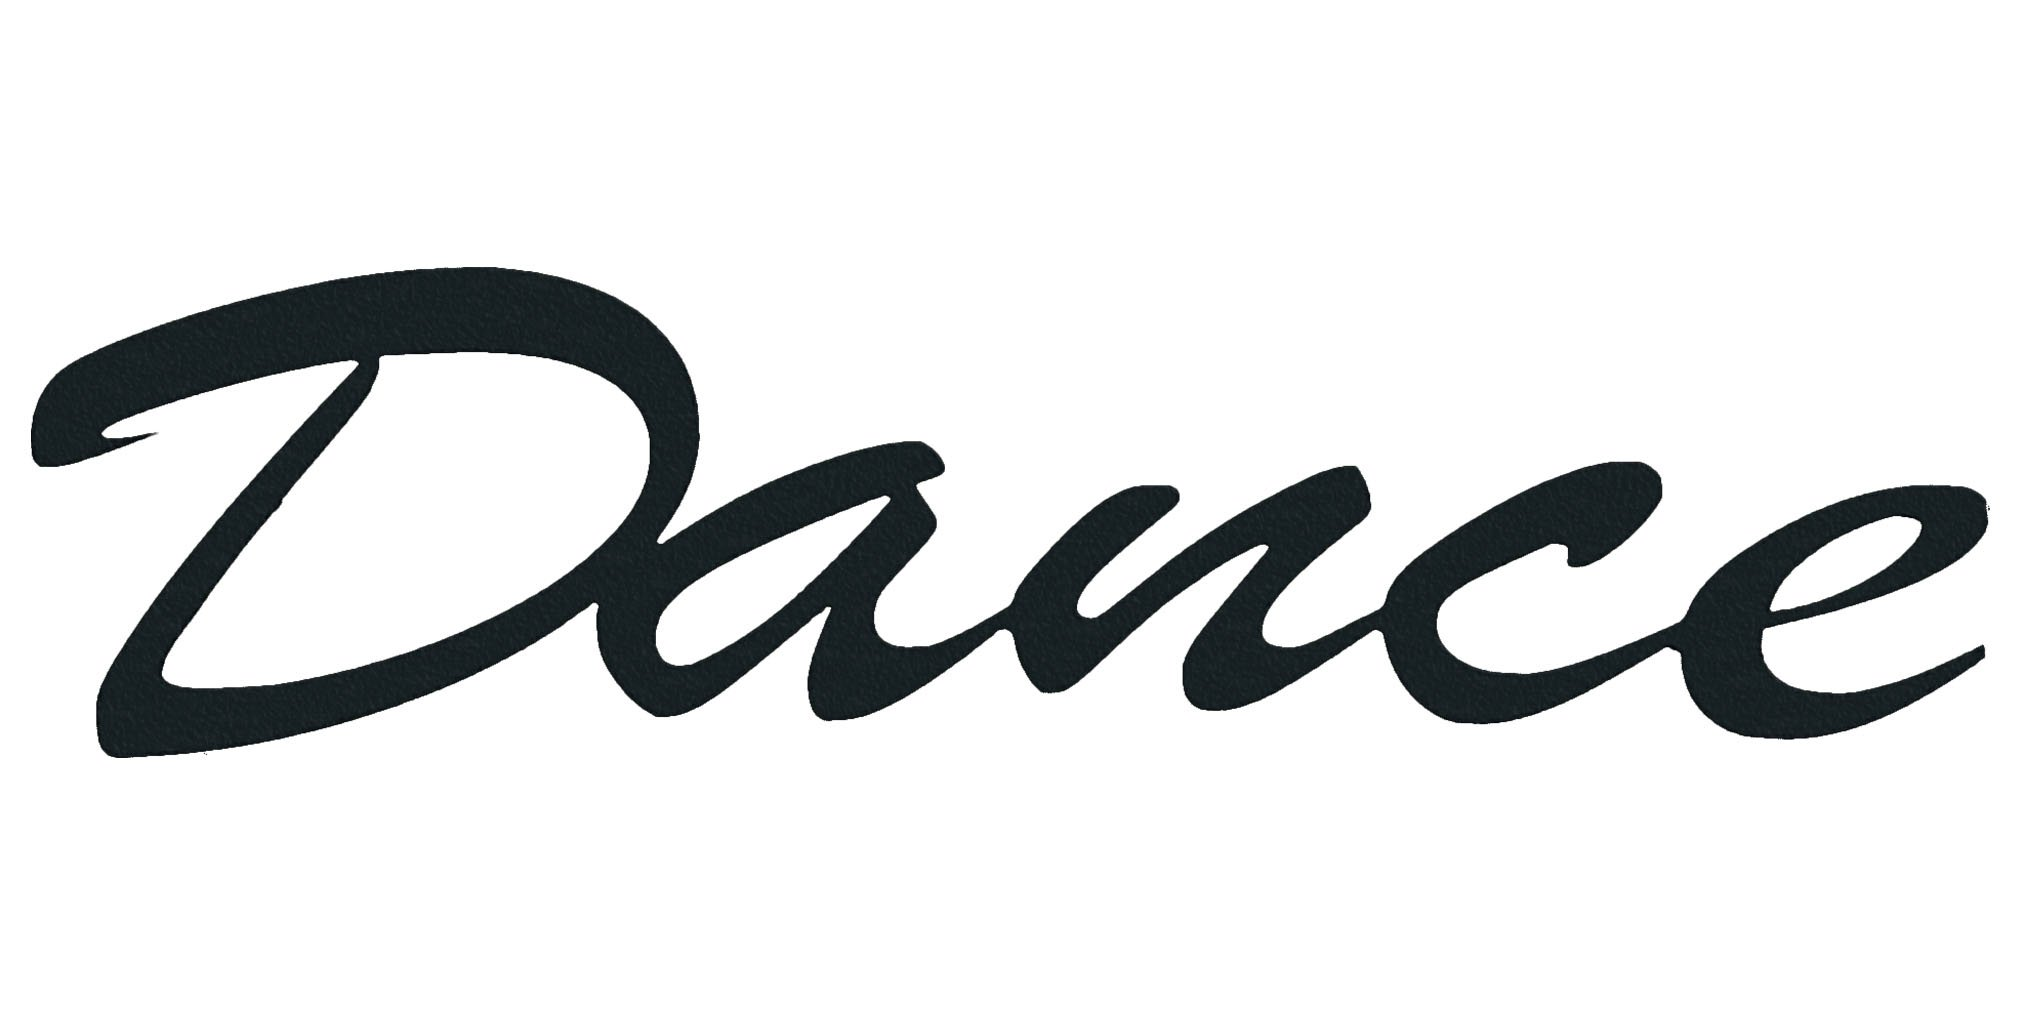 7055 Inc Dance Word Metal Wall Sign, Hammered Black